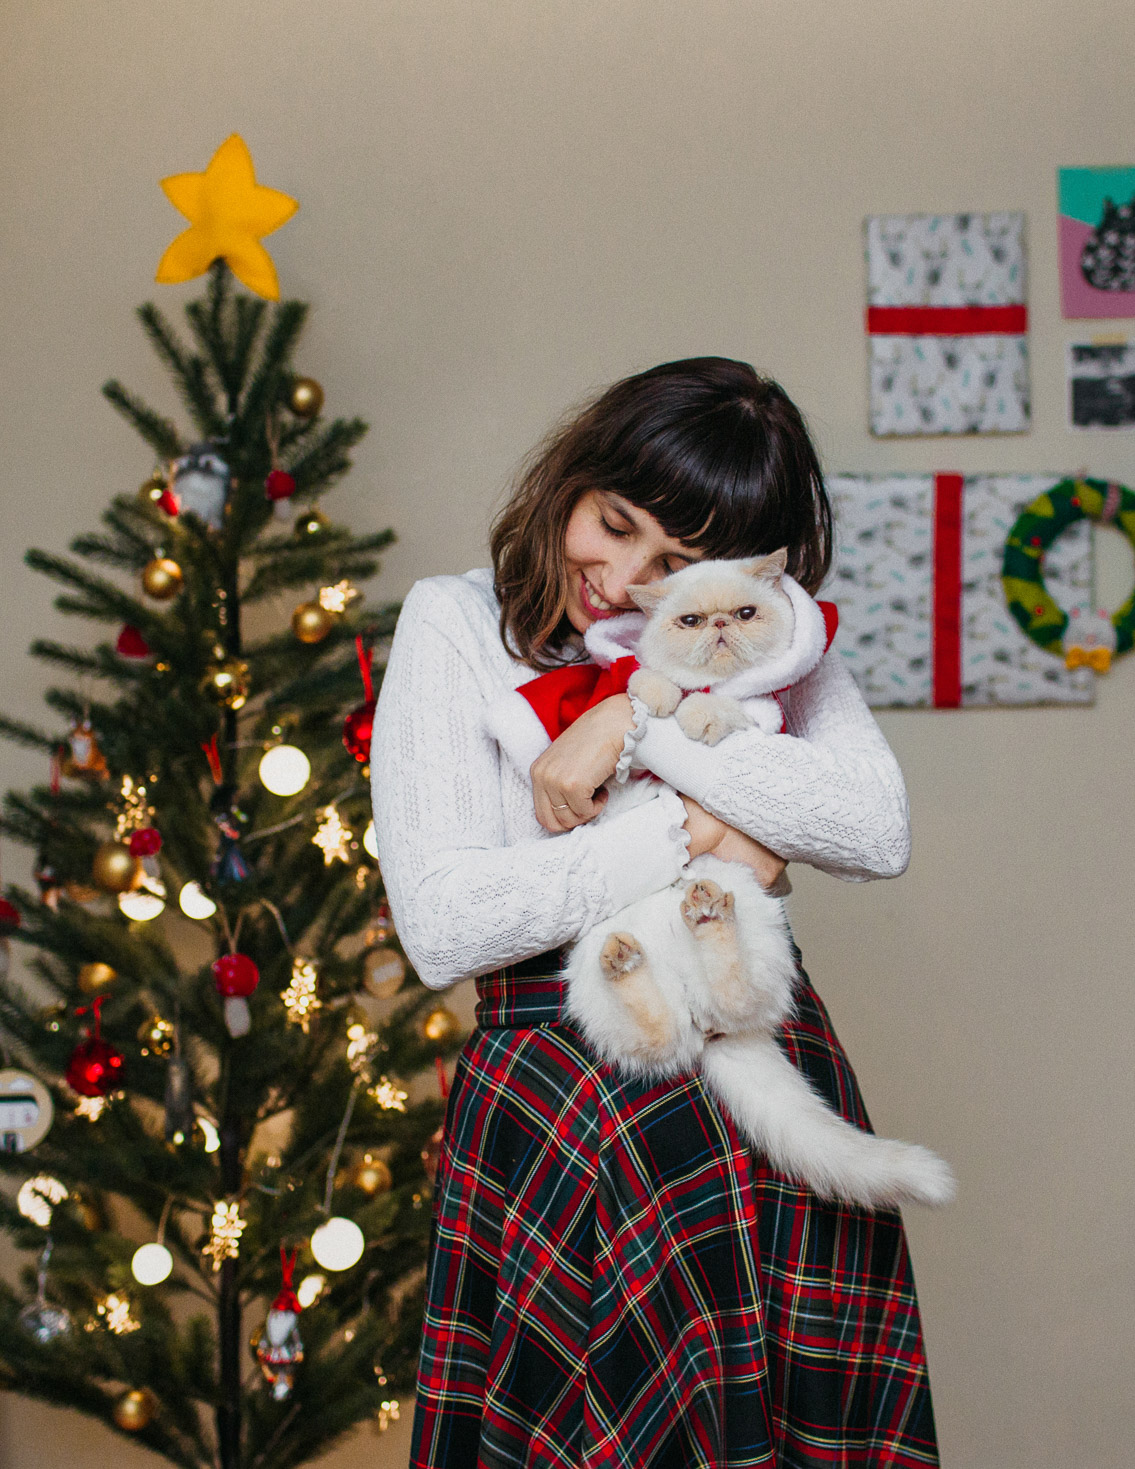 Christmas 2018 outfits - The cat, you and us